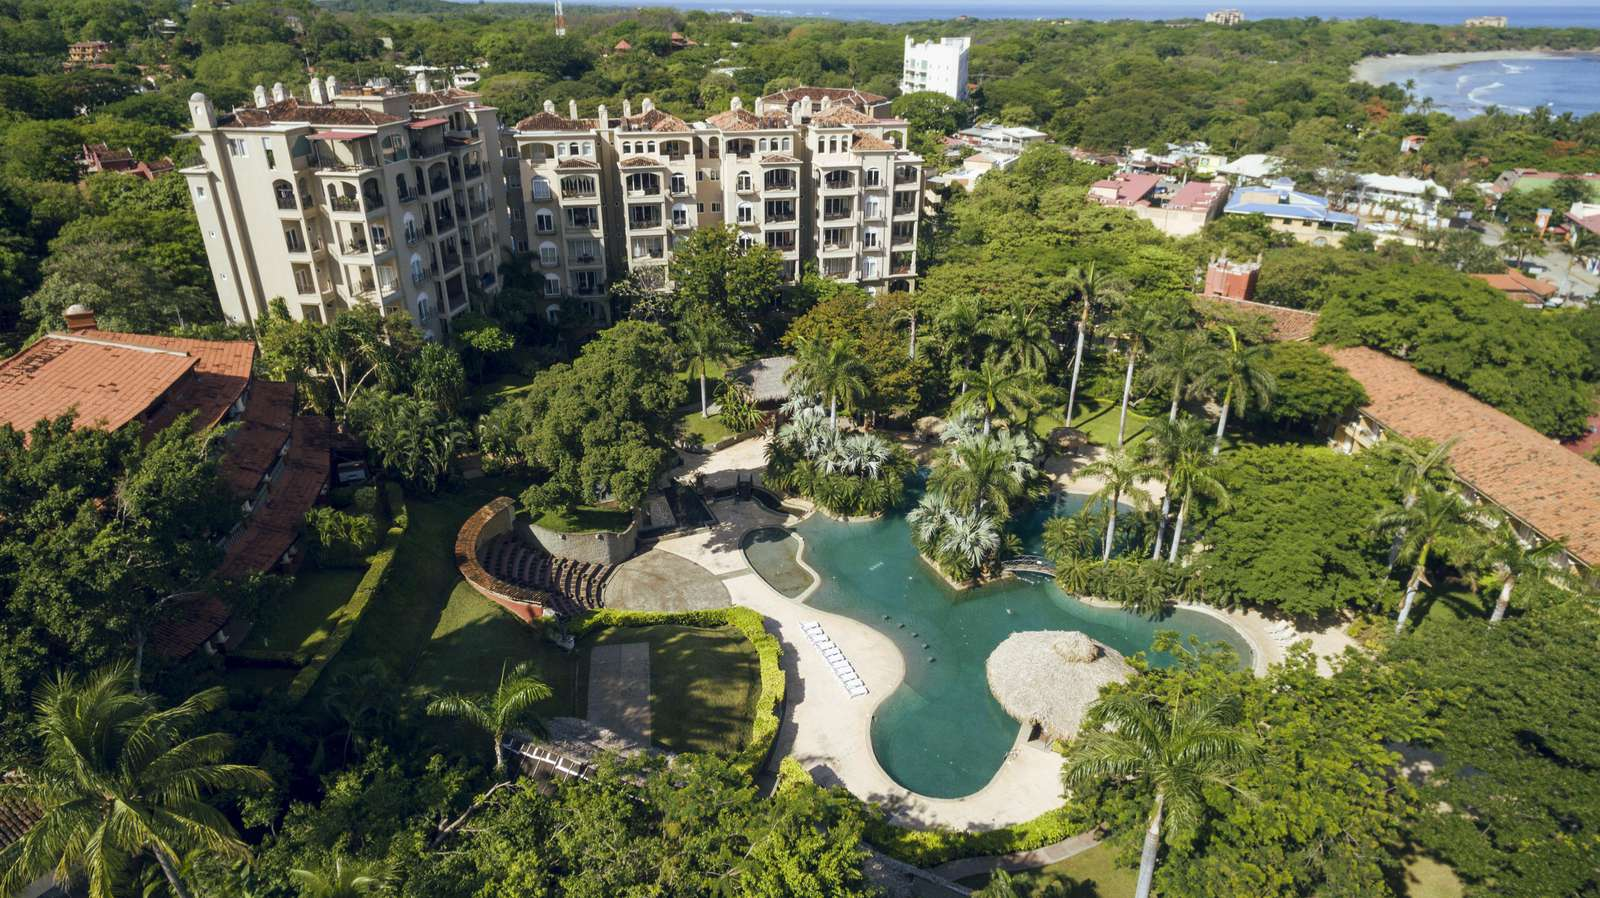 View of the Matapalo condos at the Diria Resort